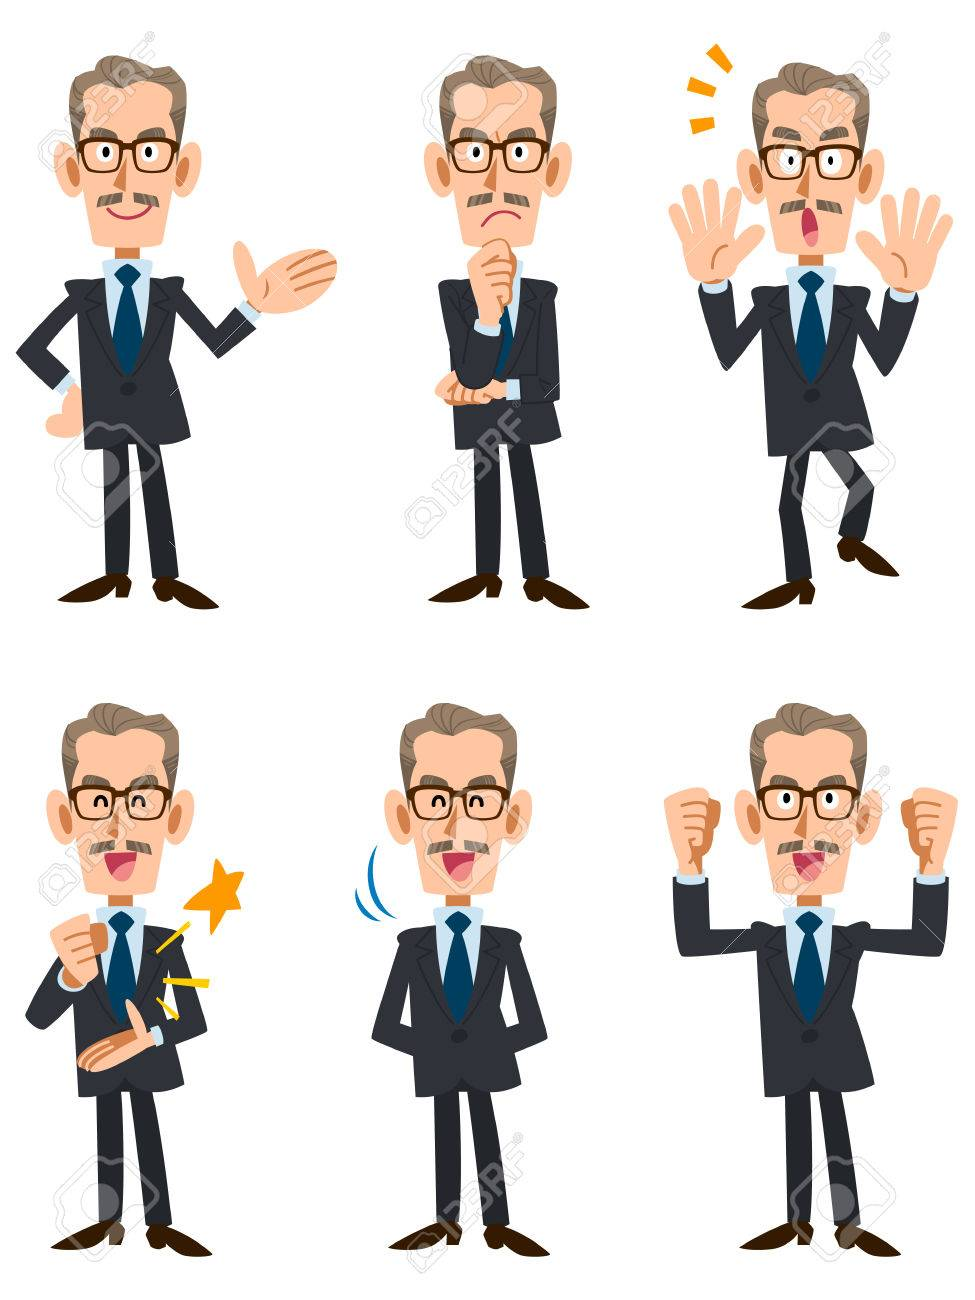 6 types of older men in suits pose and gesture - 66380392